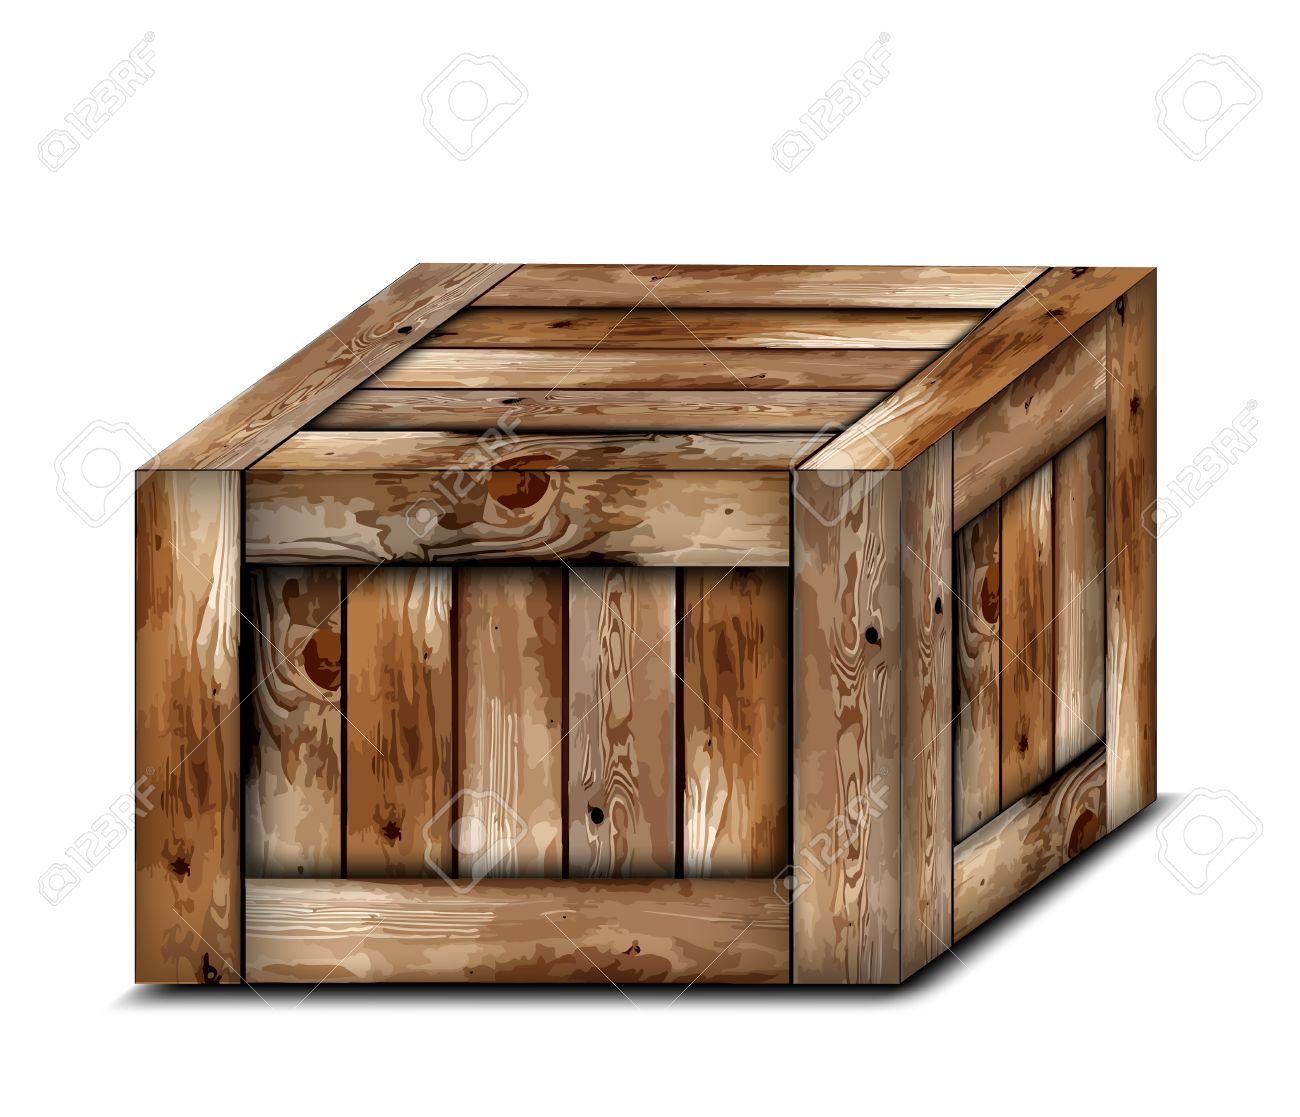 wooden box clipart. fragile wooden box stock vector 15650821 clipart d